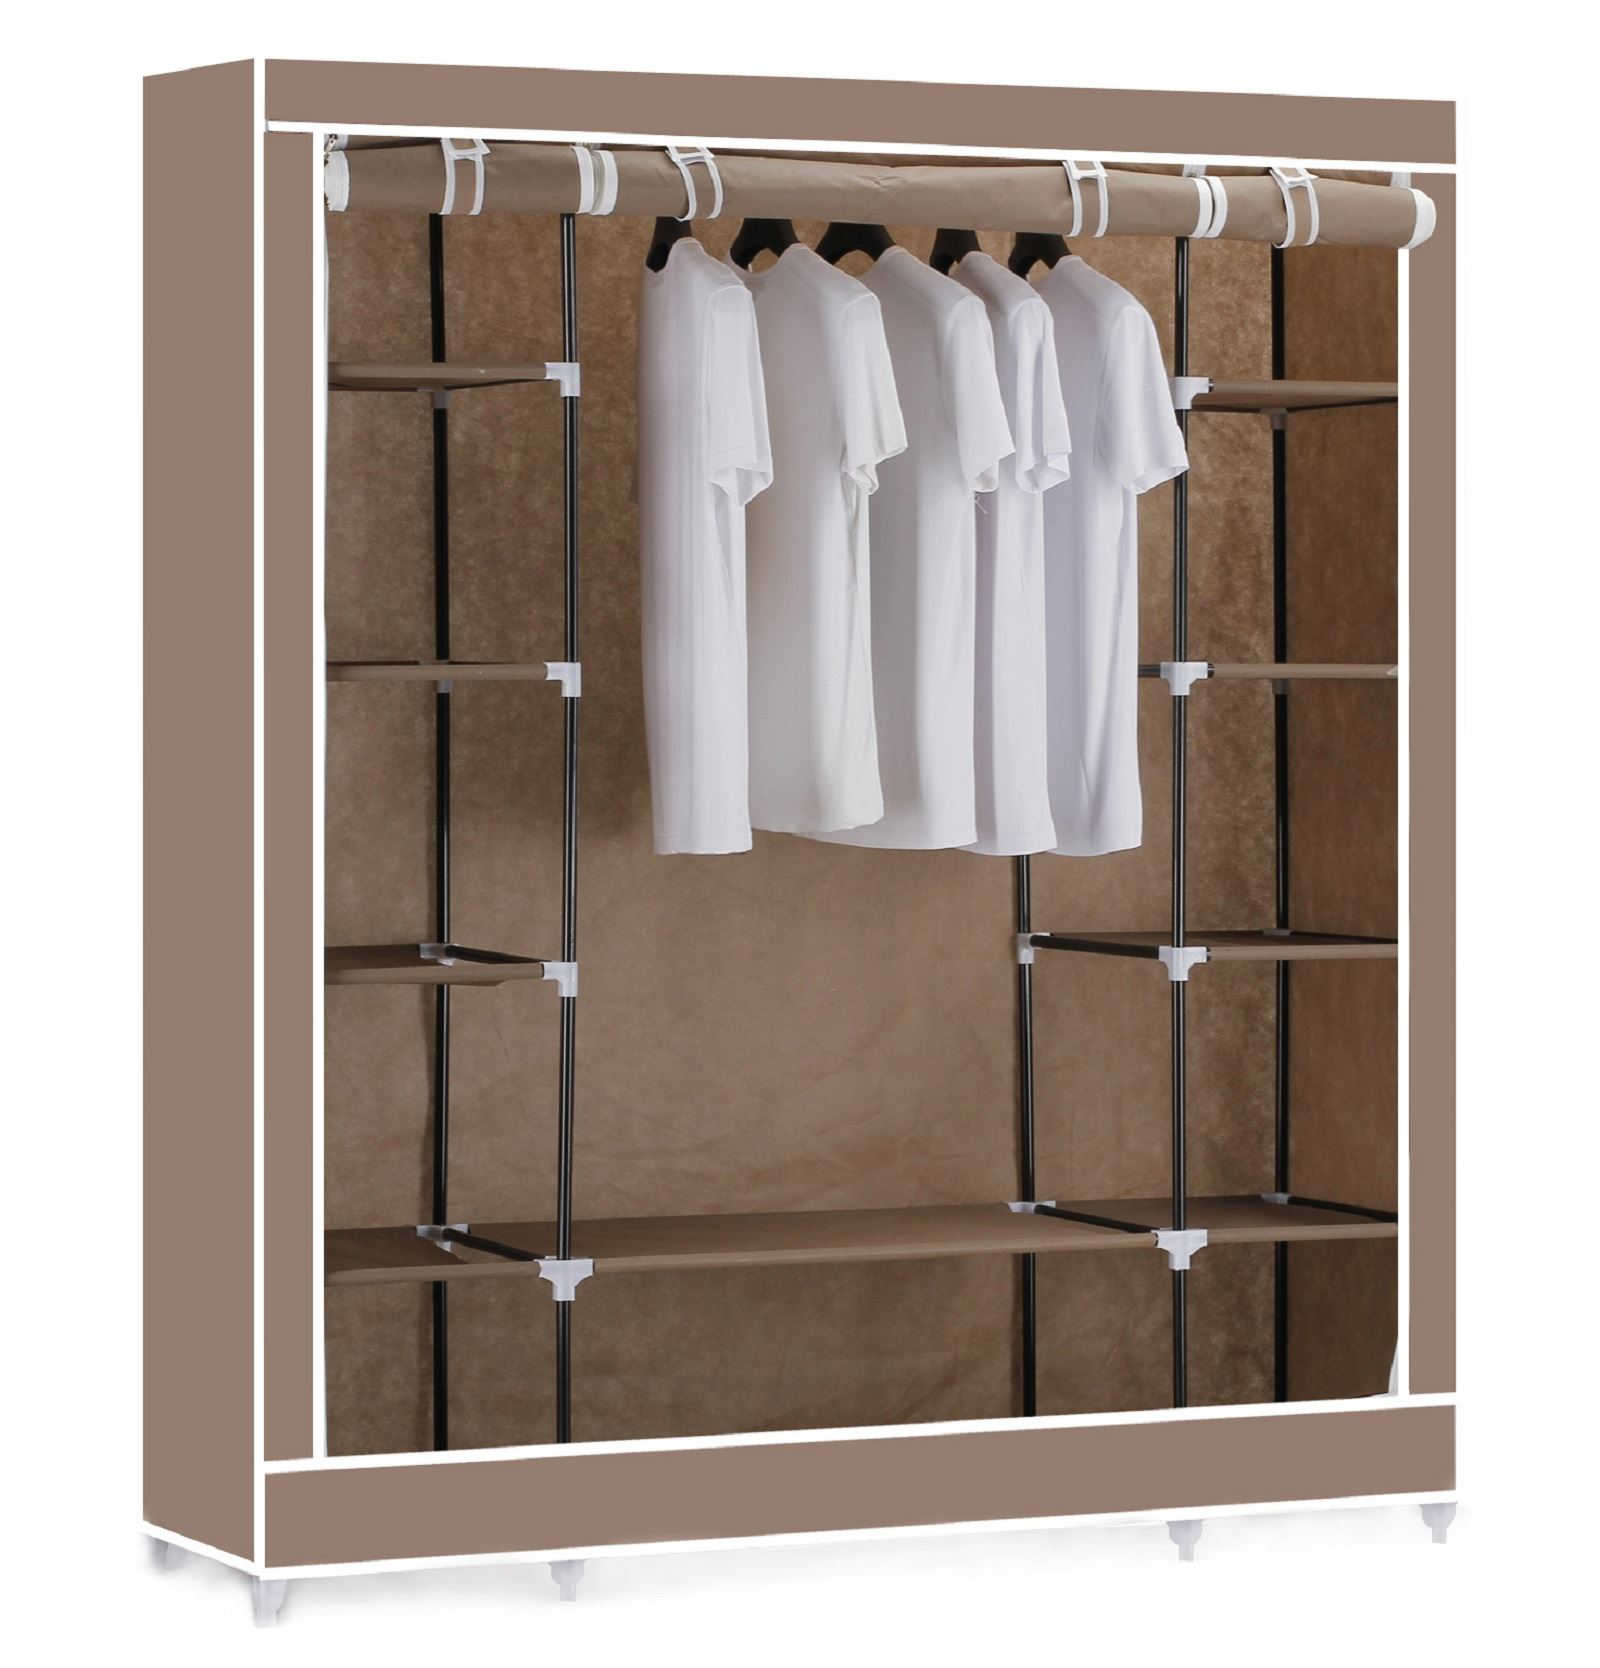 Wardrobe Storage Shelves Triple Canvas Clothes Wardrobe Cupboard Hanging Rail With